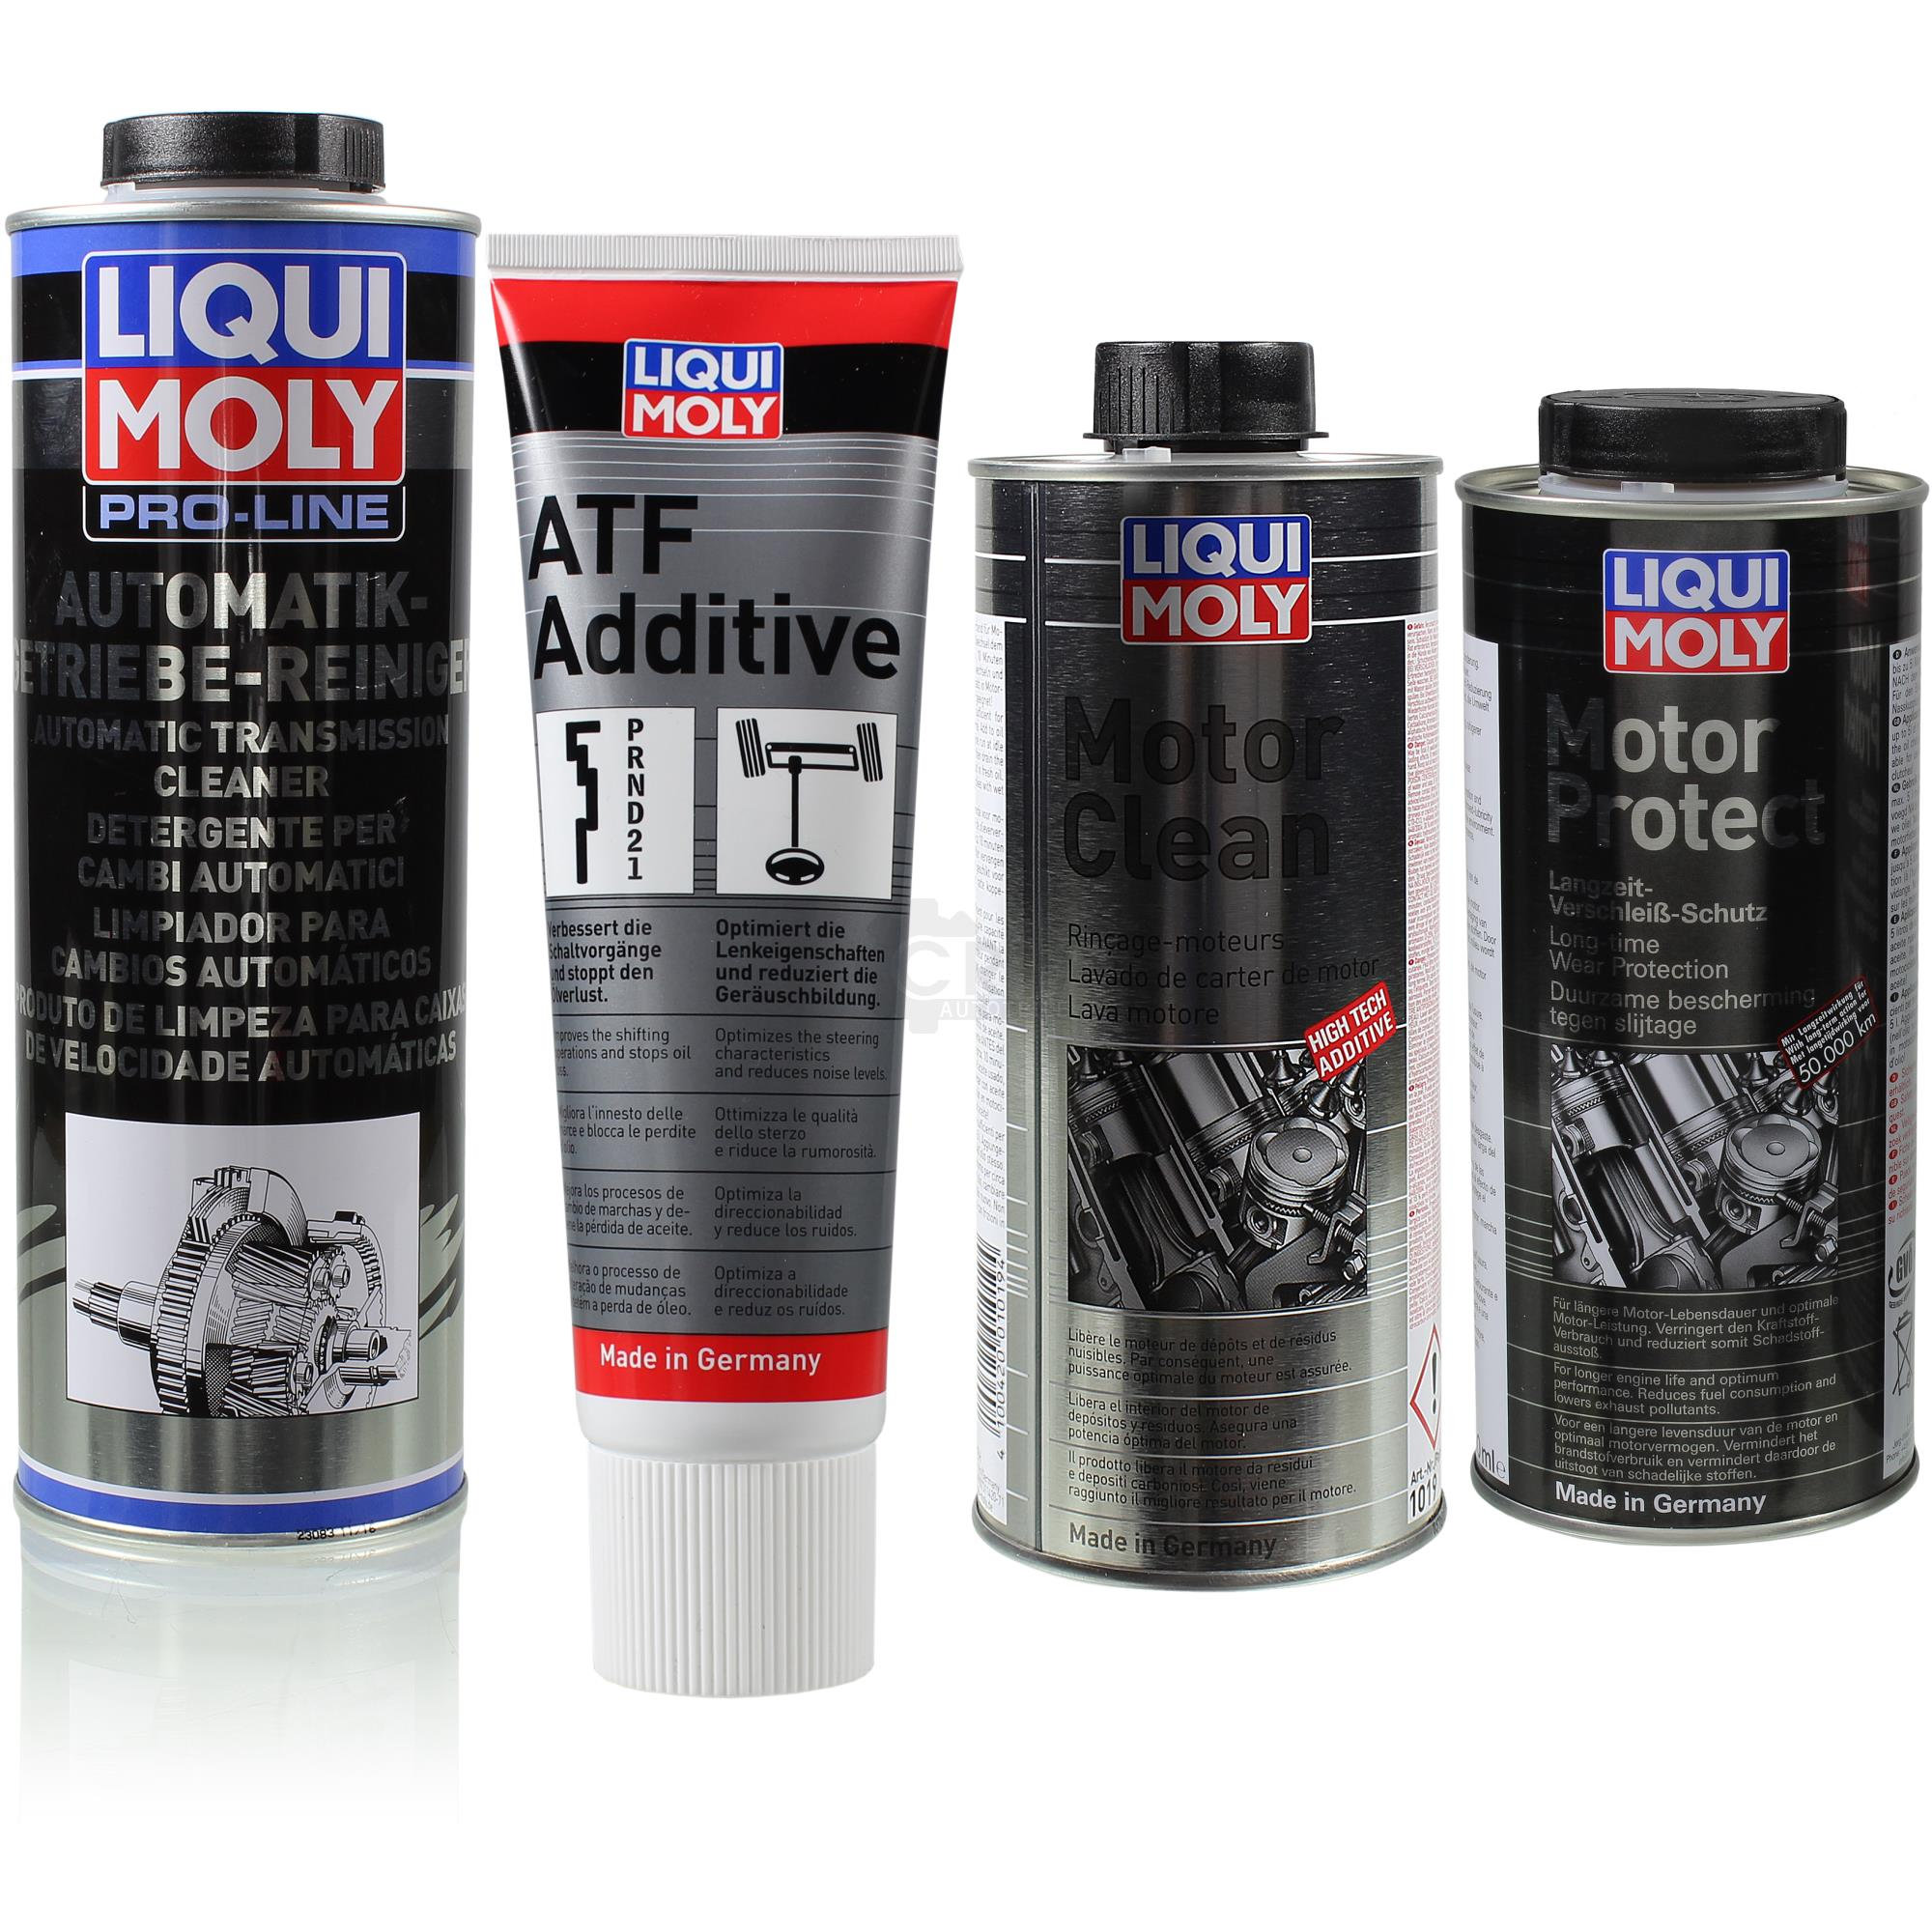 original liqui moly pro line automatikgetriebeset. Black Bedroom Furniture Sets. Home Design Ideas